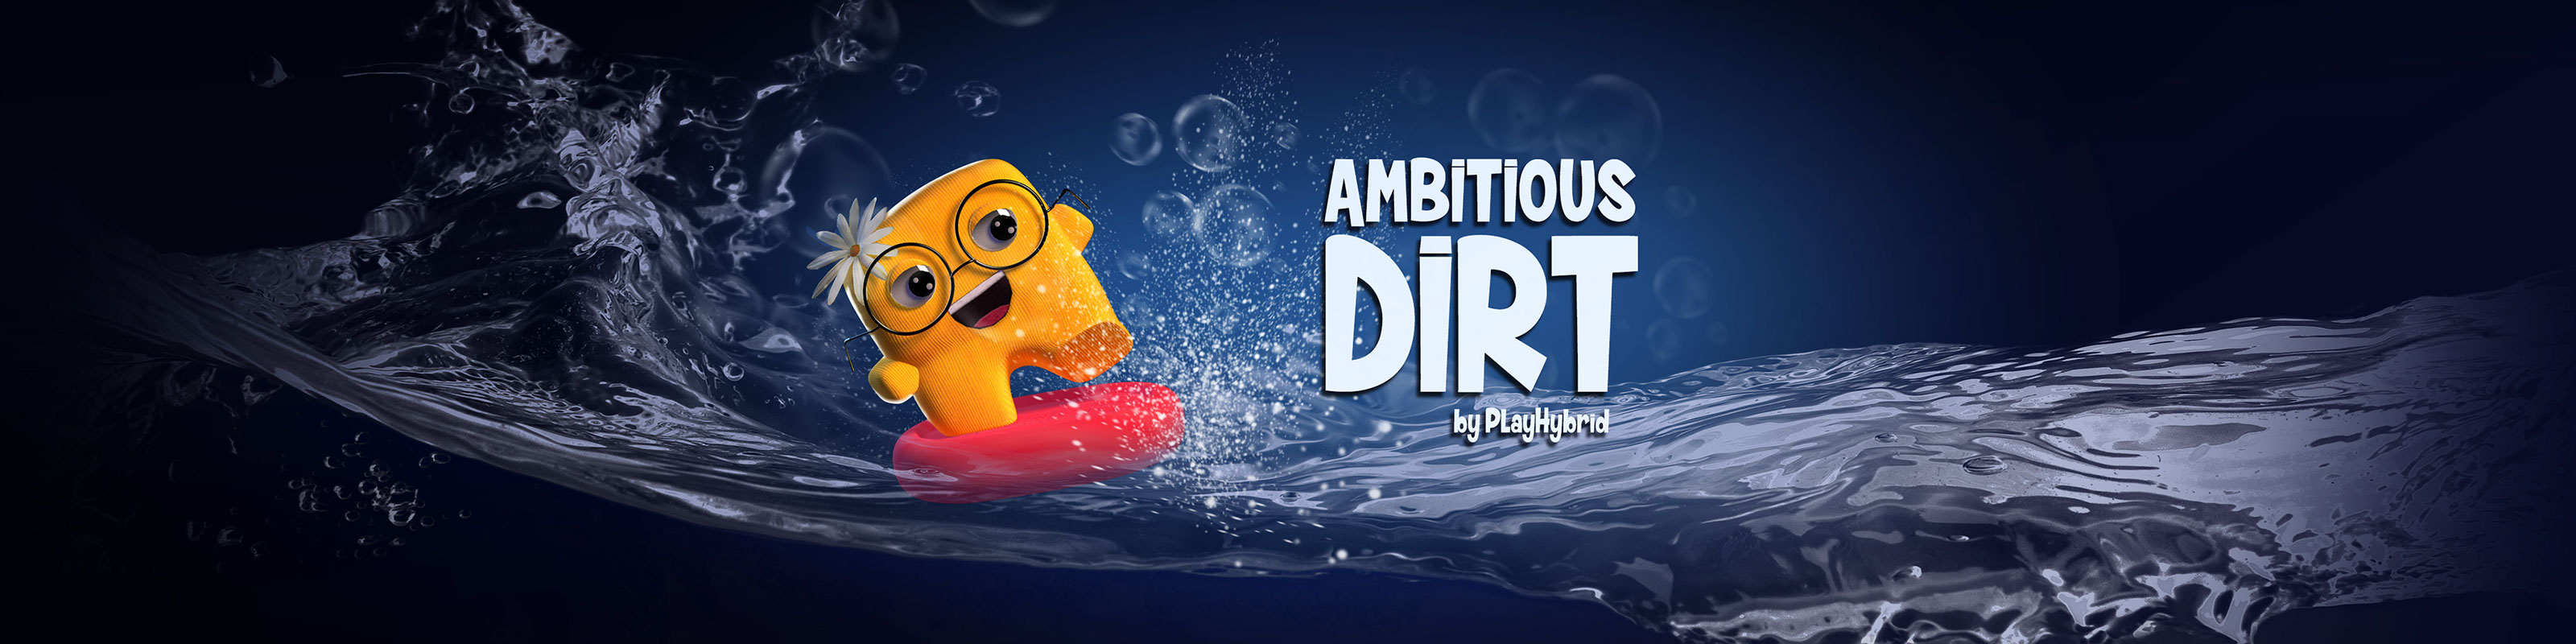 Ambitious Dirt